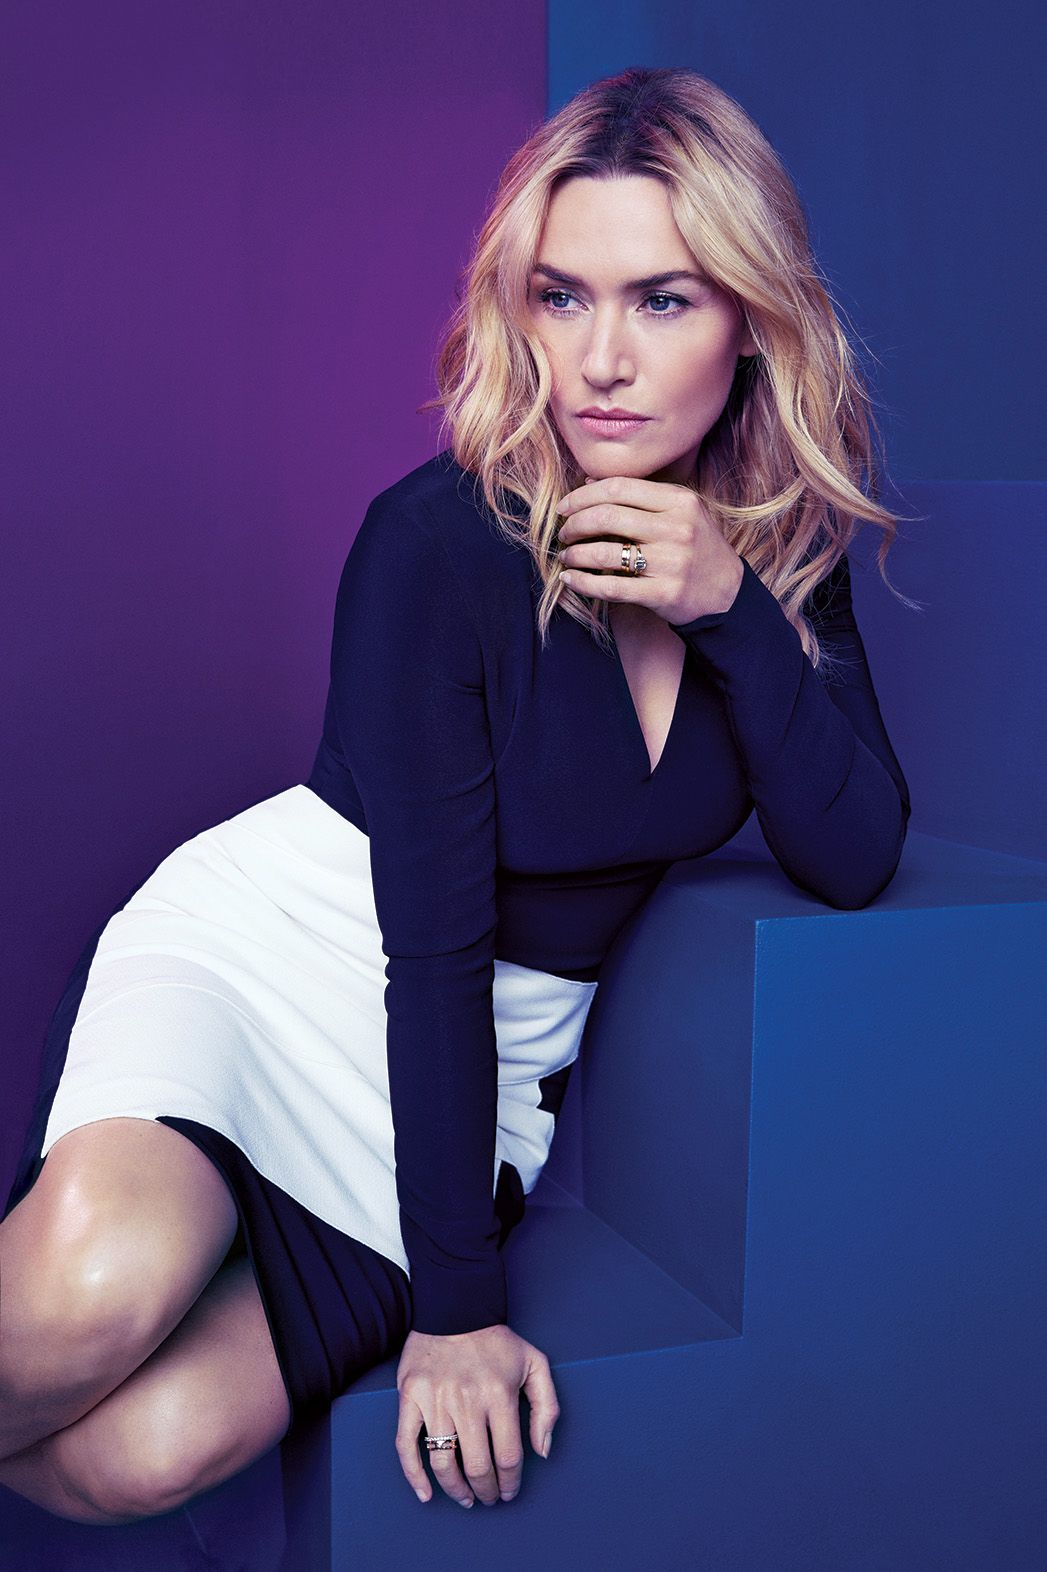 Kate Winslet In A Photoshoot For The Hollywood Reporter Magazine